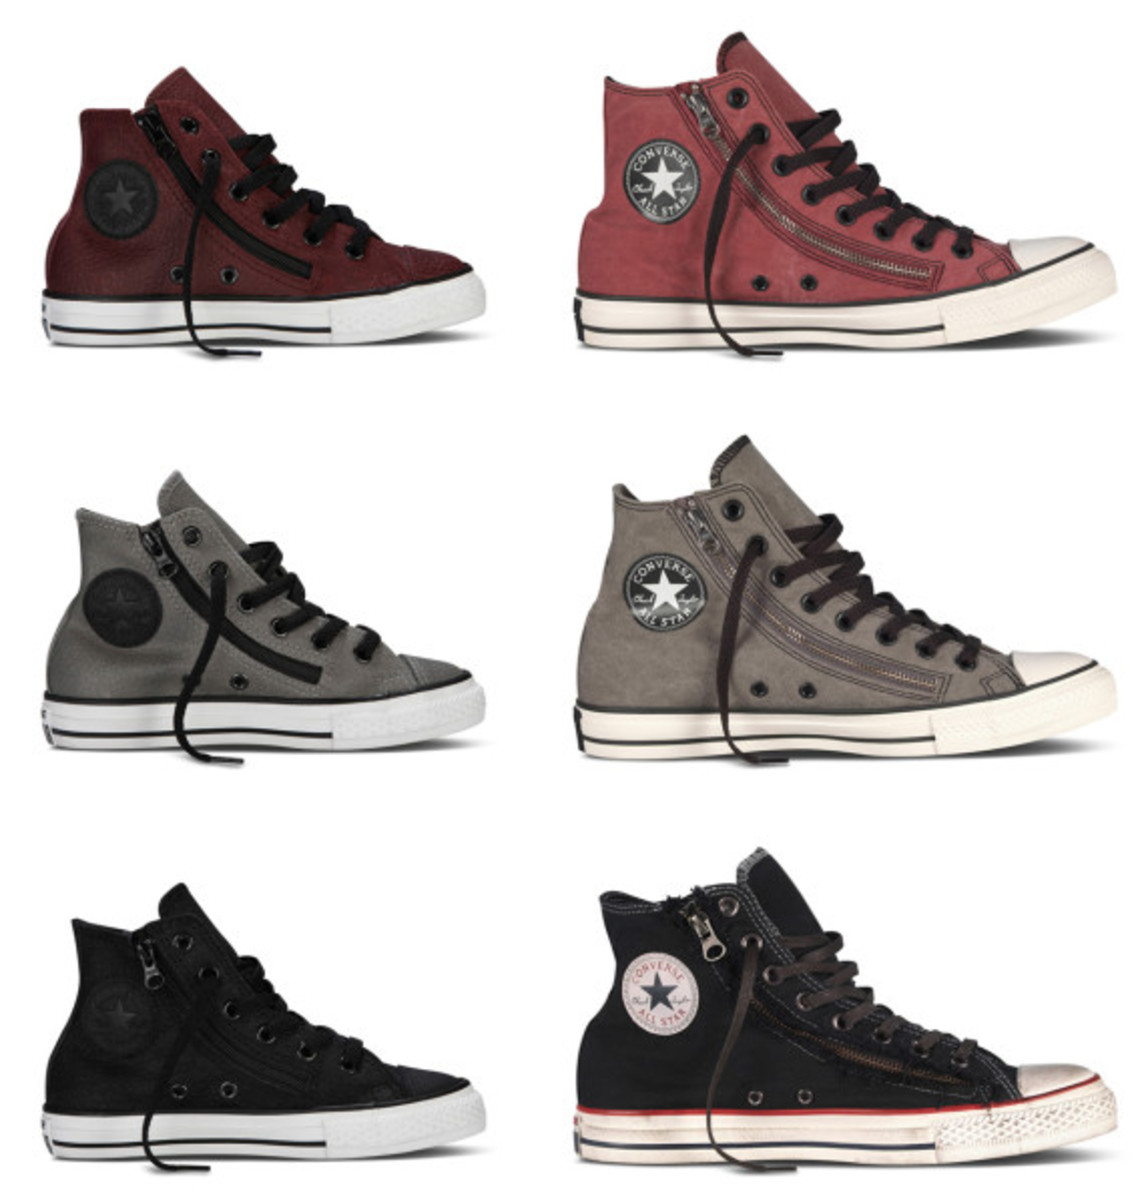 CONVERSE Chuck Taylor All Star Double Zip - Fall 2013 Collection - 0